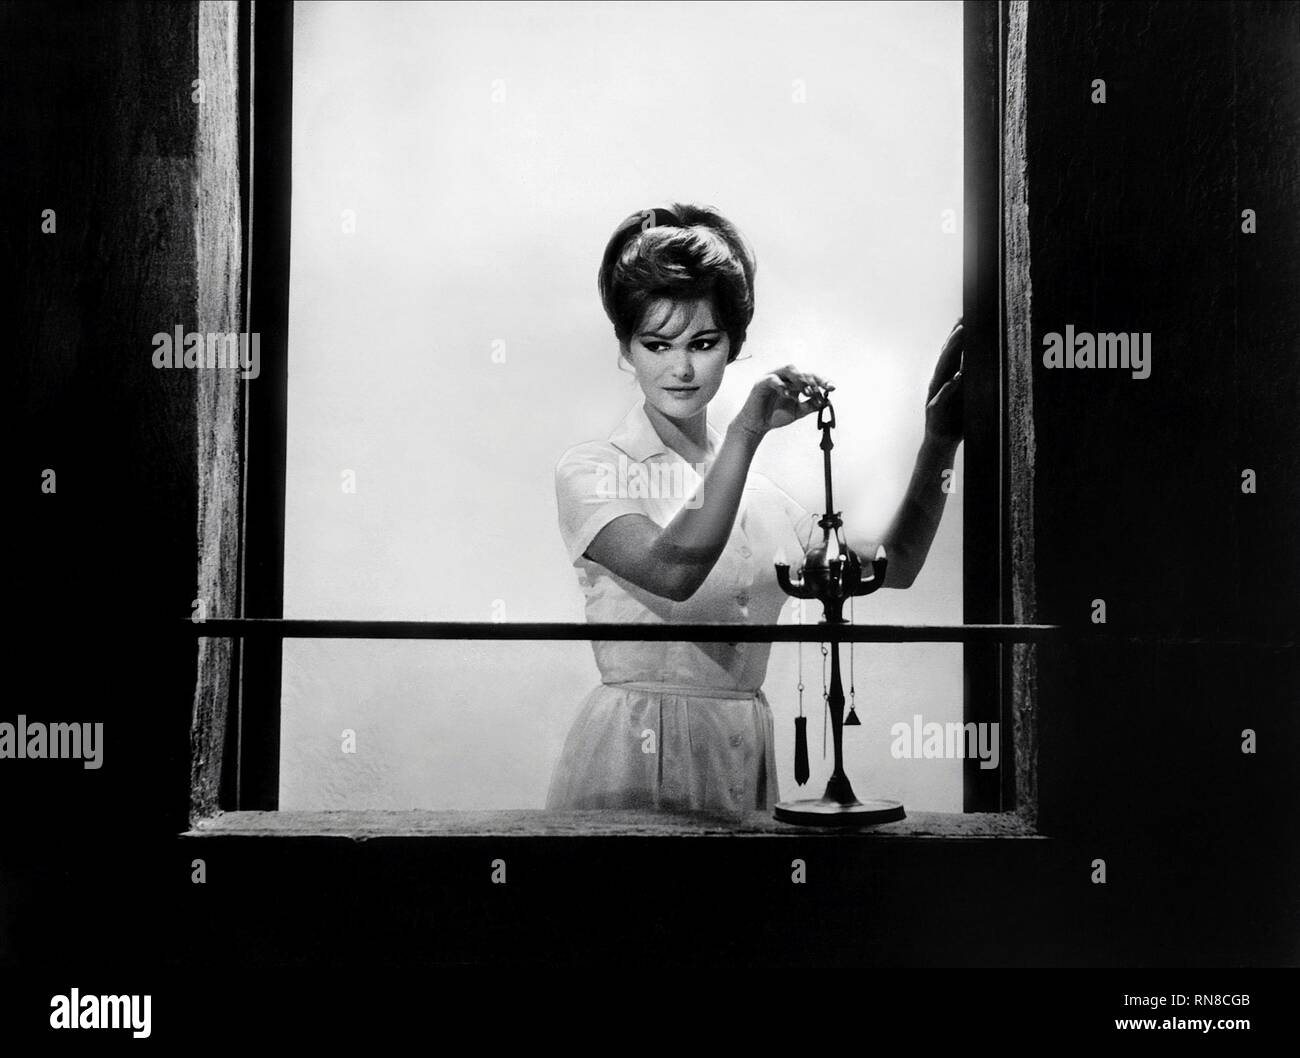 Claudia Cardinale Stock Photos & Claudia Cardinale Stock ...